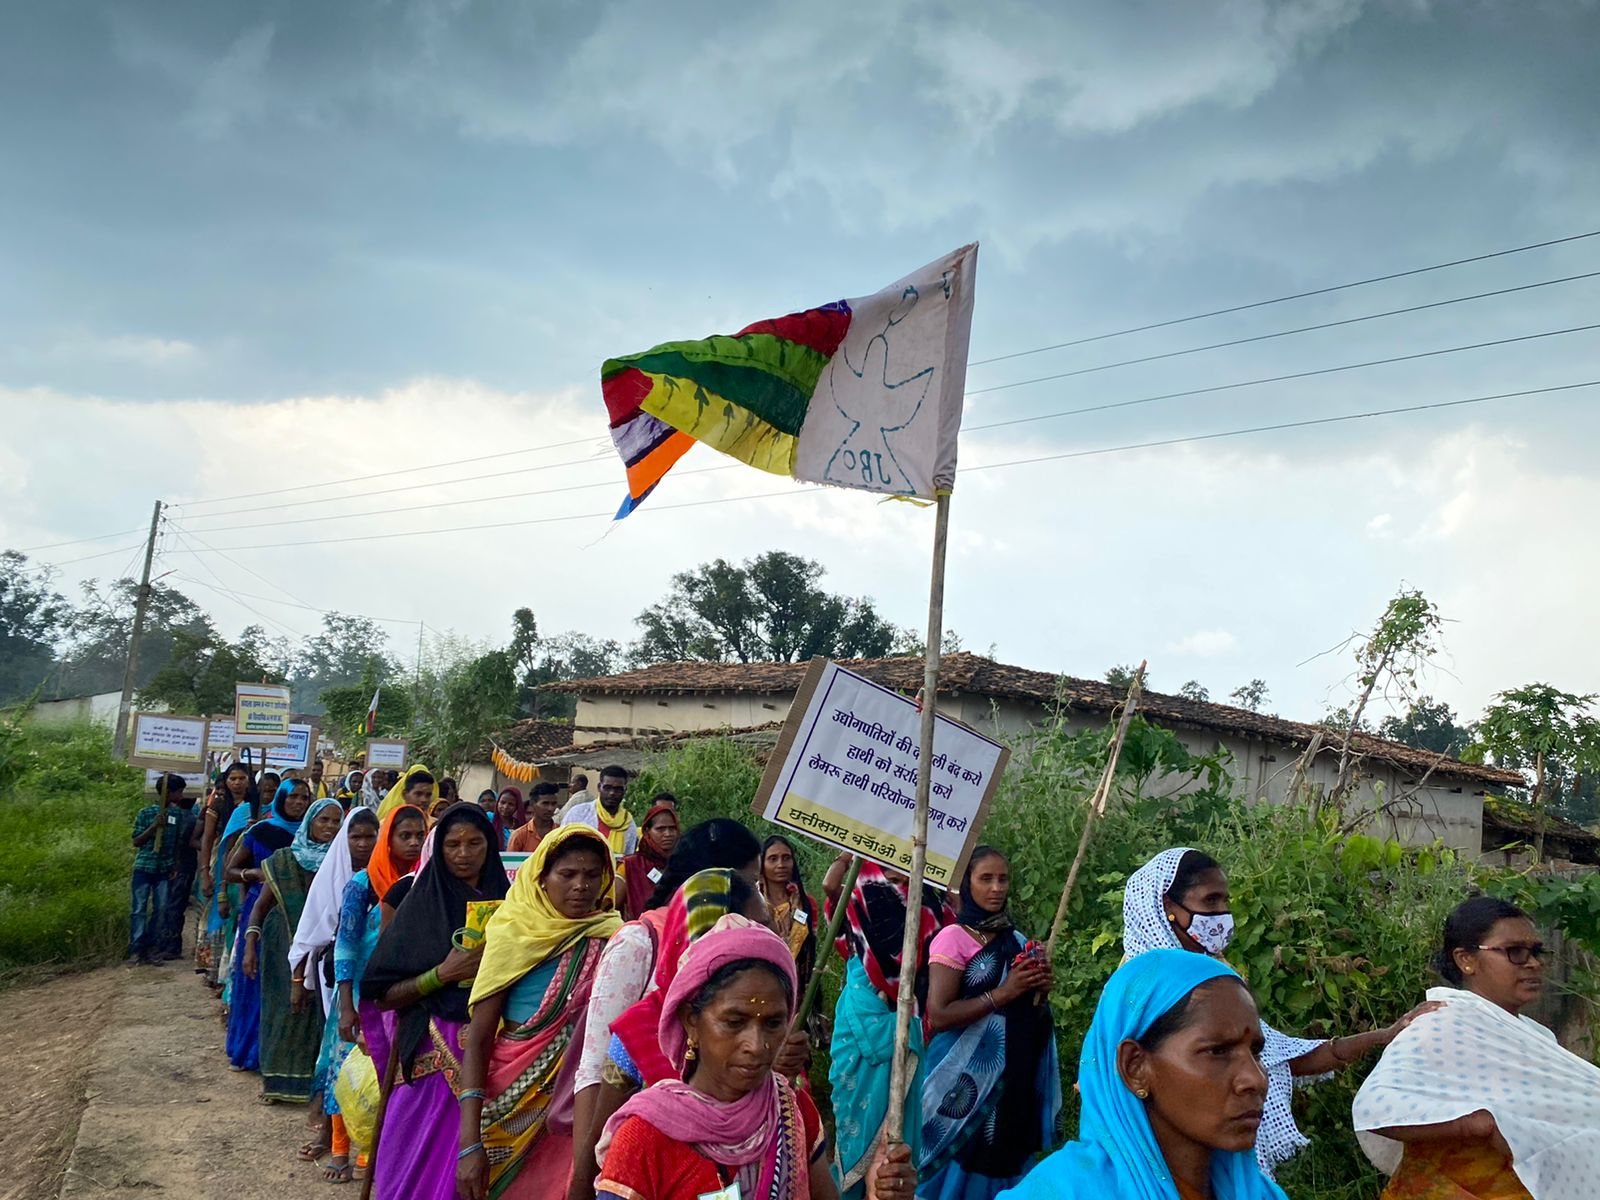 Participants in the 300-km march to save the Hasdeo forests in India. Photo Twitter / @SaveHasdeo